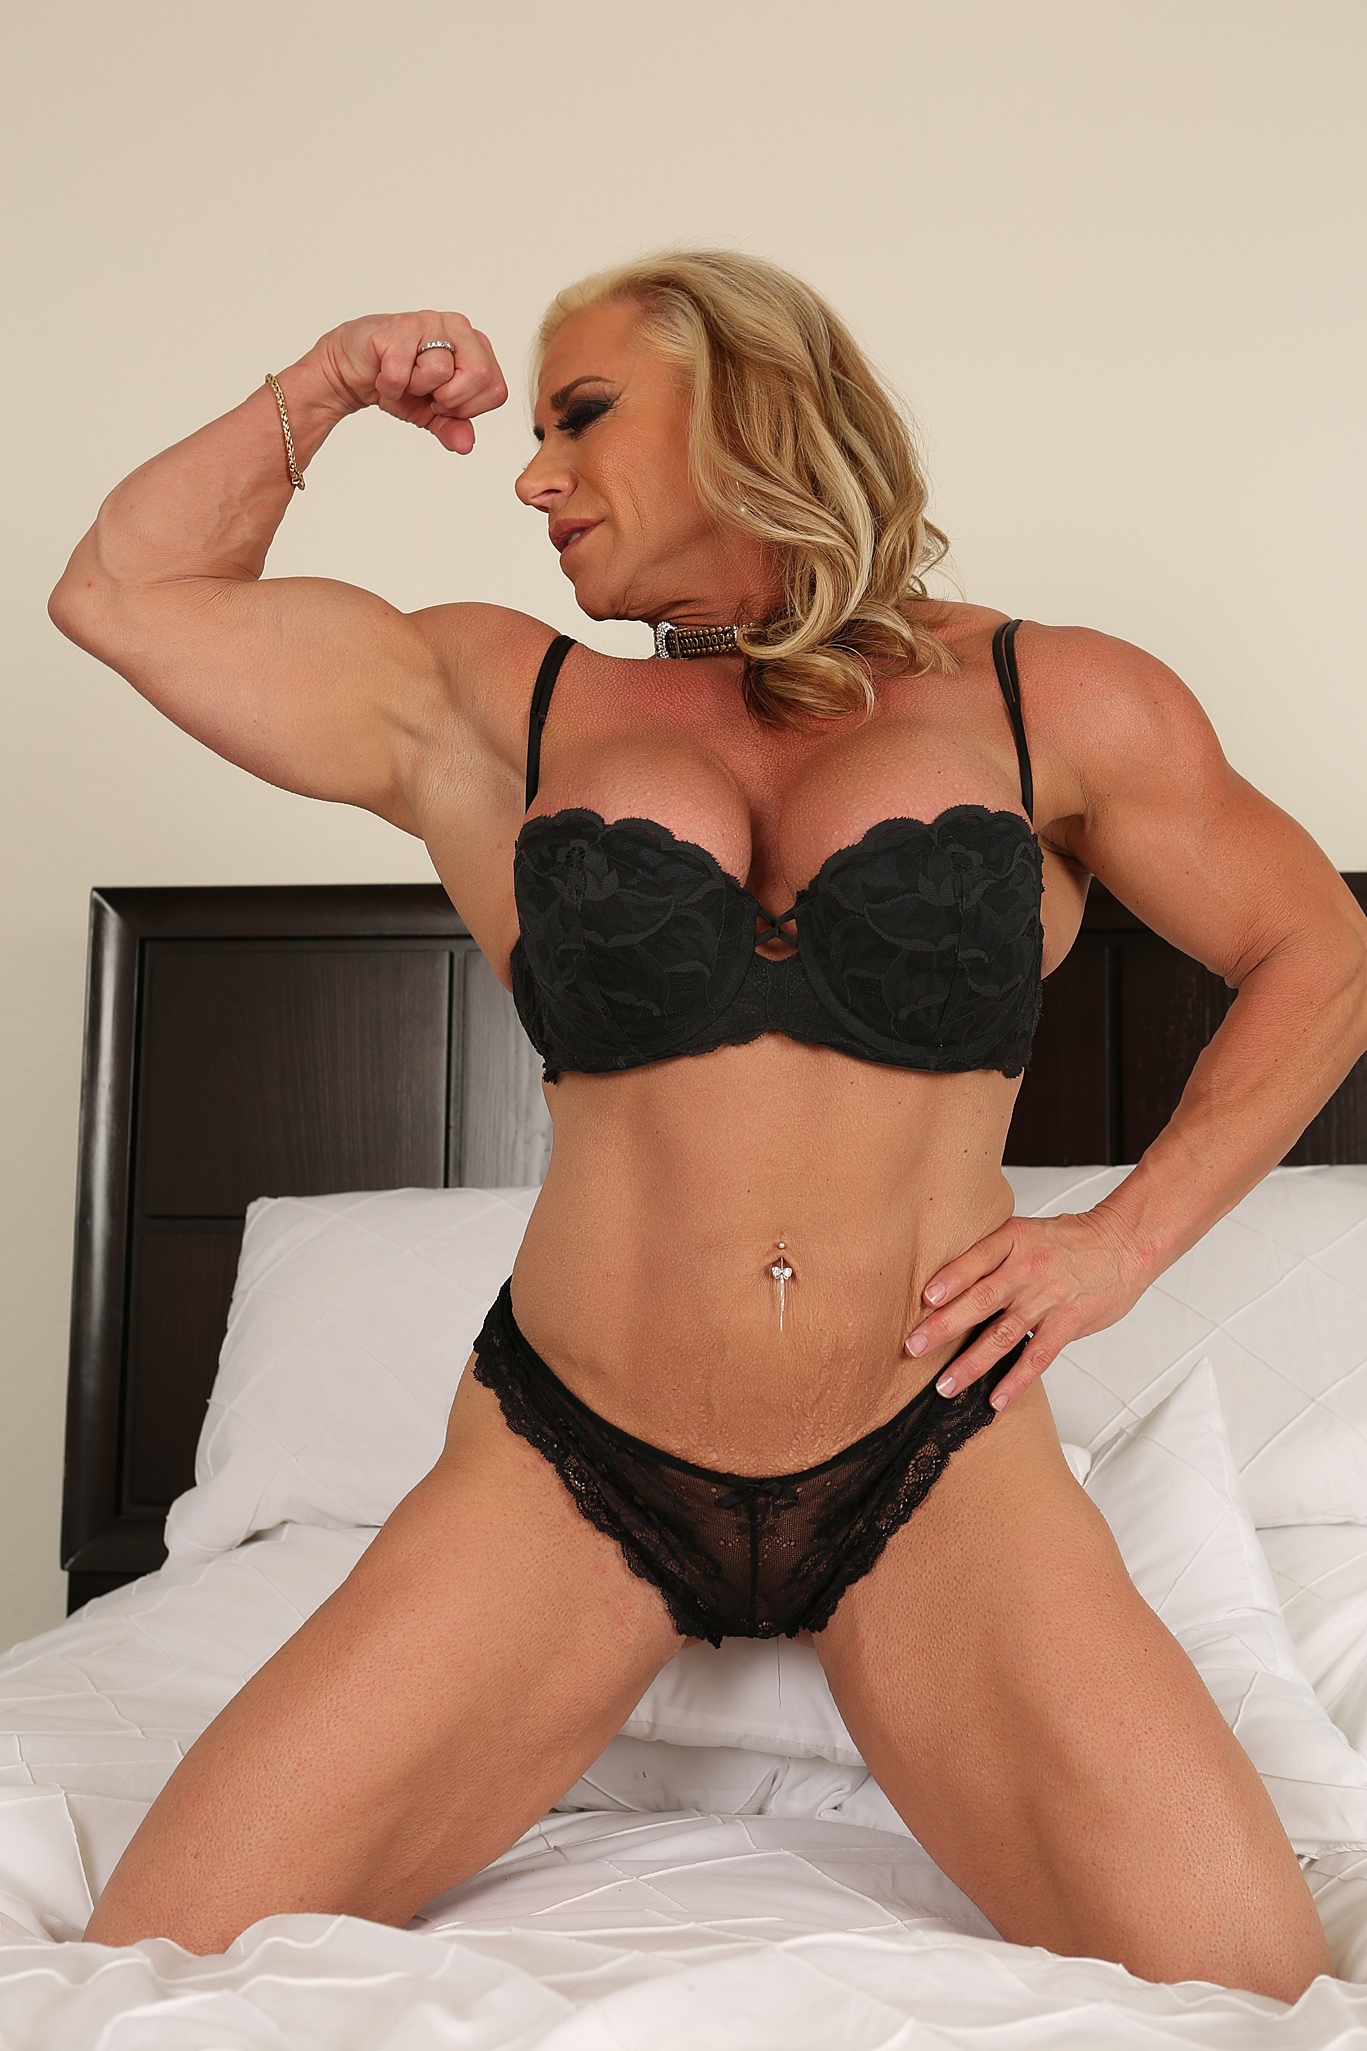 Female bodybuilder jill jaxen gets naked 10